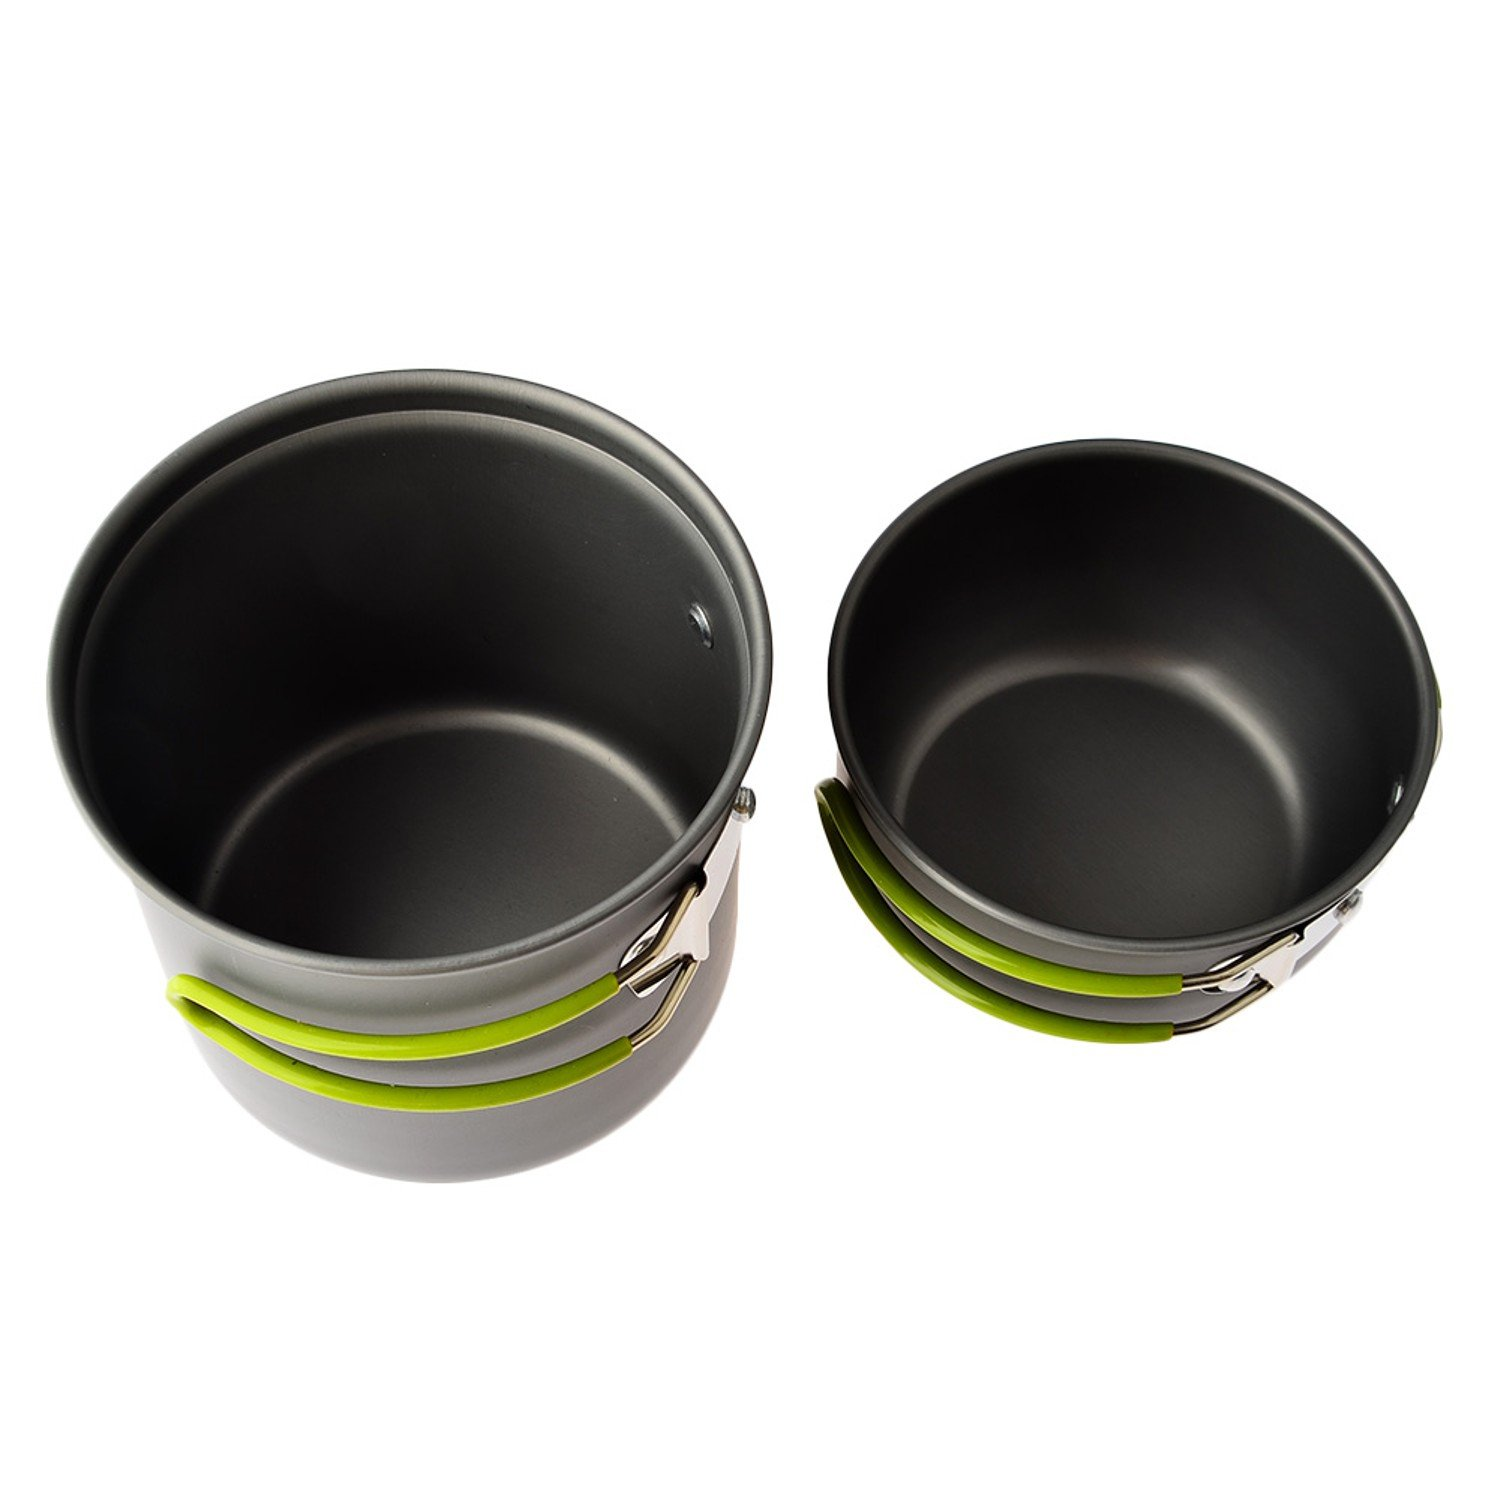 Convenient Outdoor Camping Hiking Backpacking Picnic Cookware Cooking Tool Set Pot Pan + Piezo Ignition Canister Stove travel Cookware